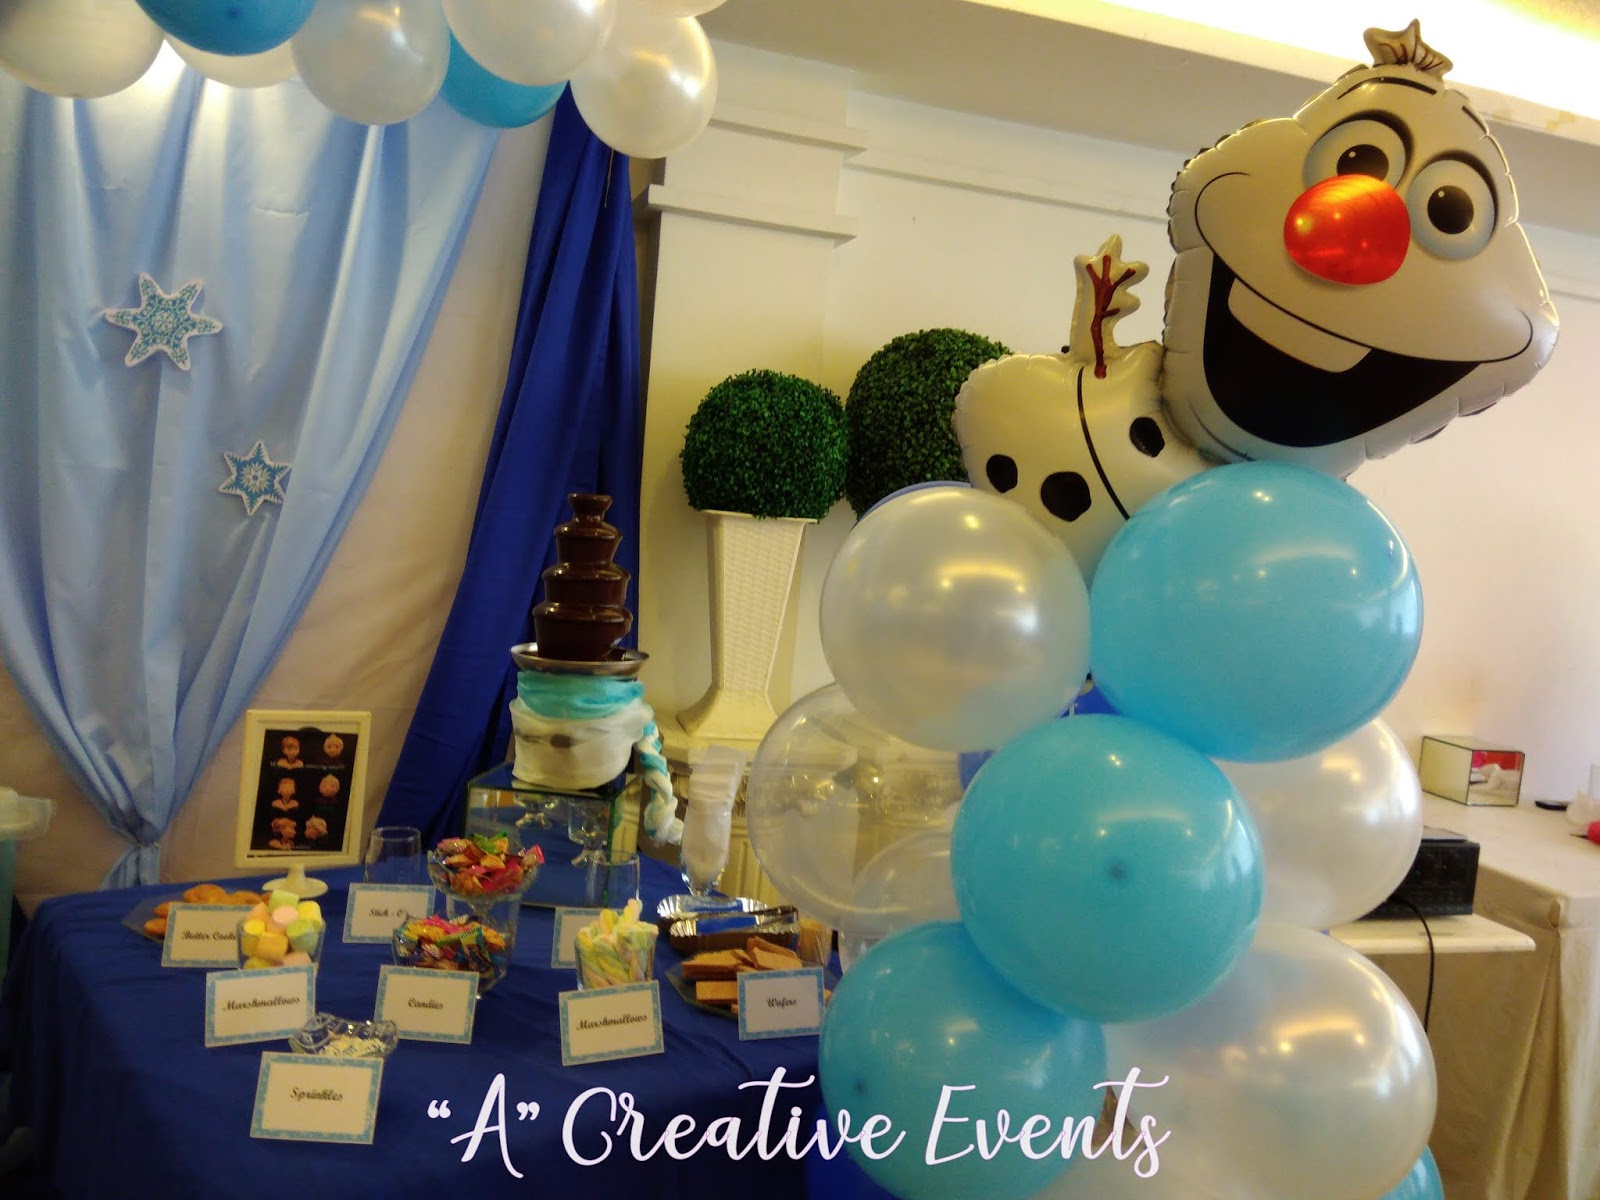 Chocolate Fountain Frozen Themed Party Sweet Station - Davao City